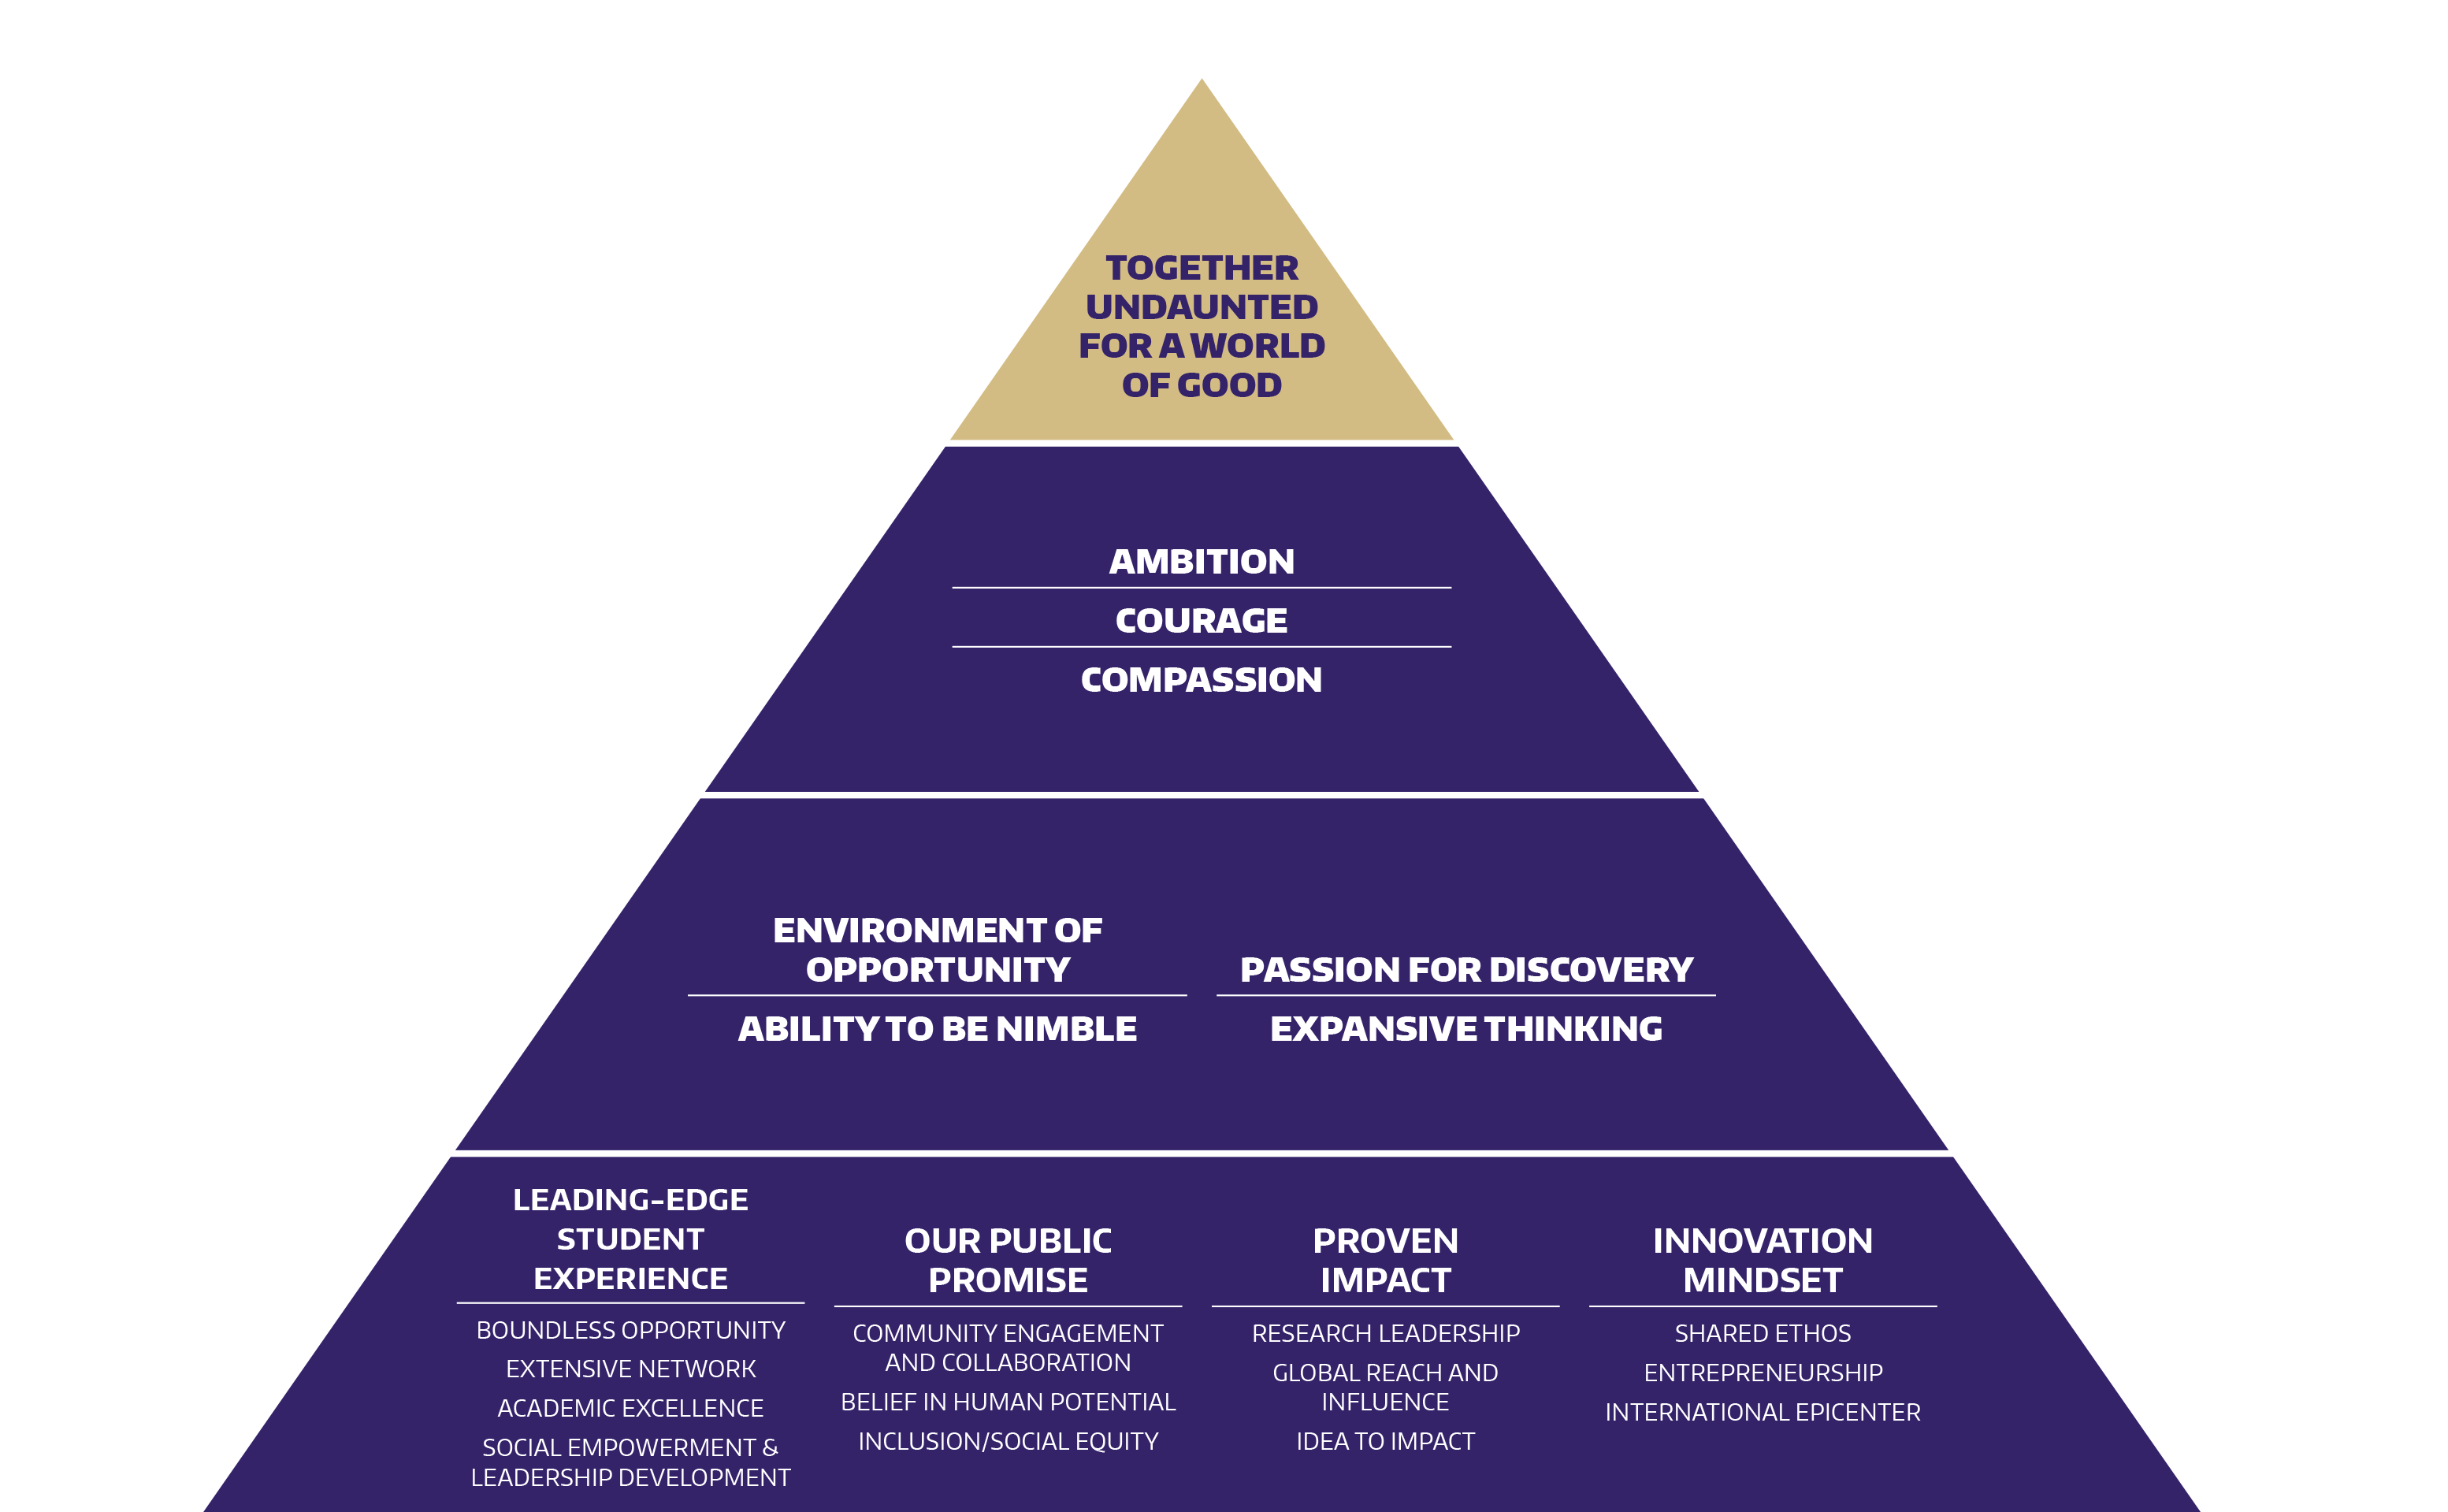 Base of pyramid (brand pillars): Leading-edge student experience, public as a philosophy, proven impact, innovative mindset. Second level of pyramid: Environment of opportunity, ability to be nimble, passion for discovery, expansive thinking. Third level of pyramid: Ambition, courage, compassion. Top of pyramid (internal brand promise): Together undaunted for a world of good.